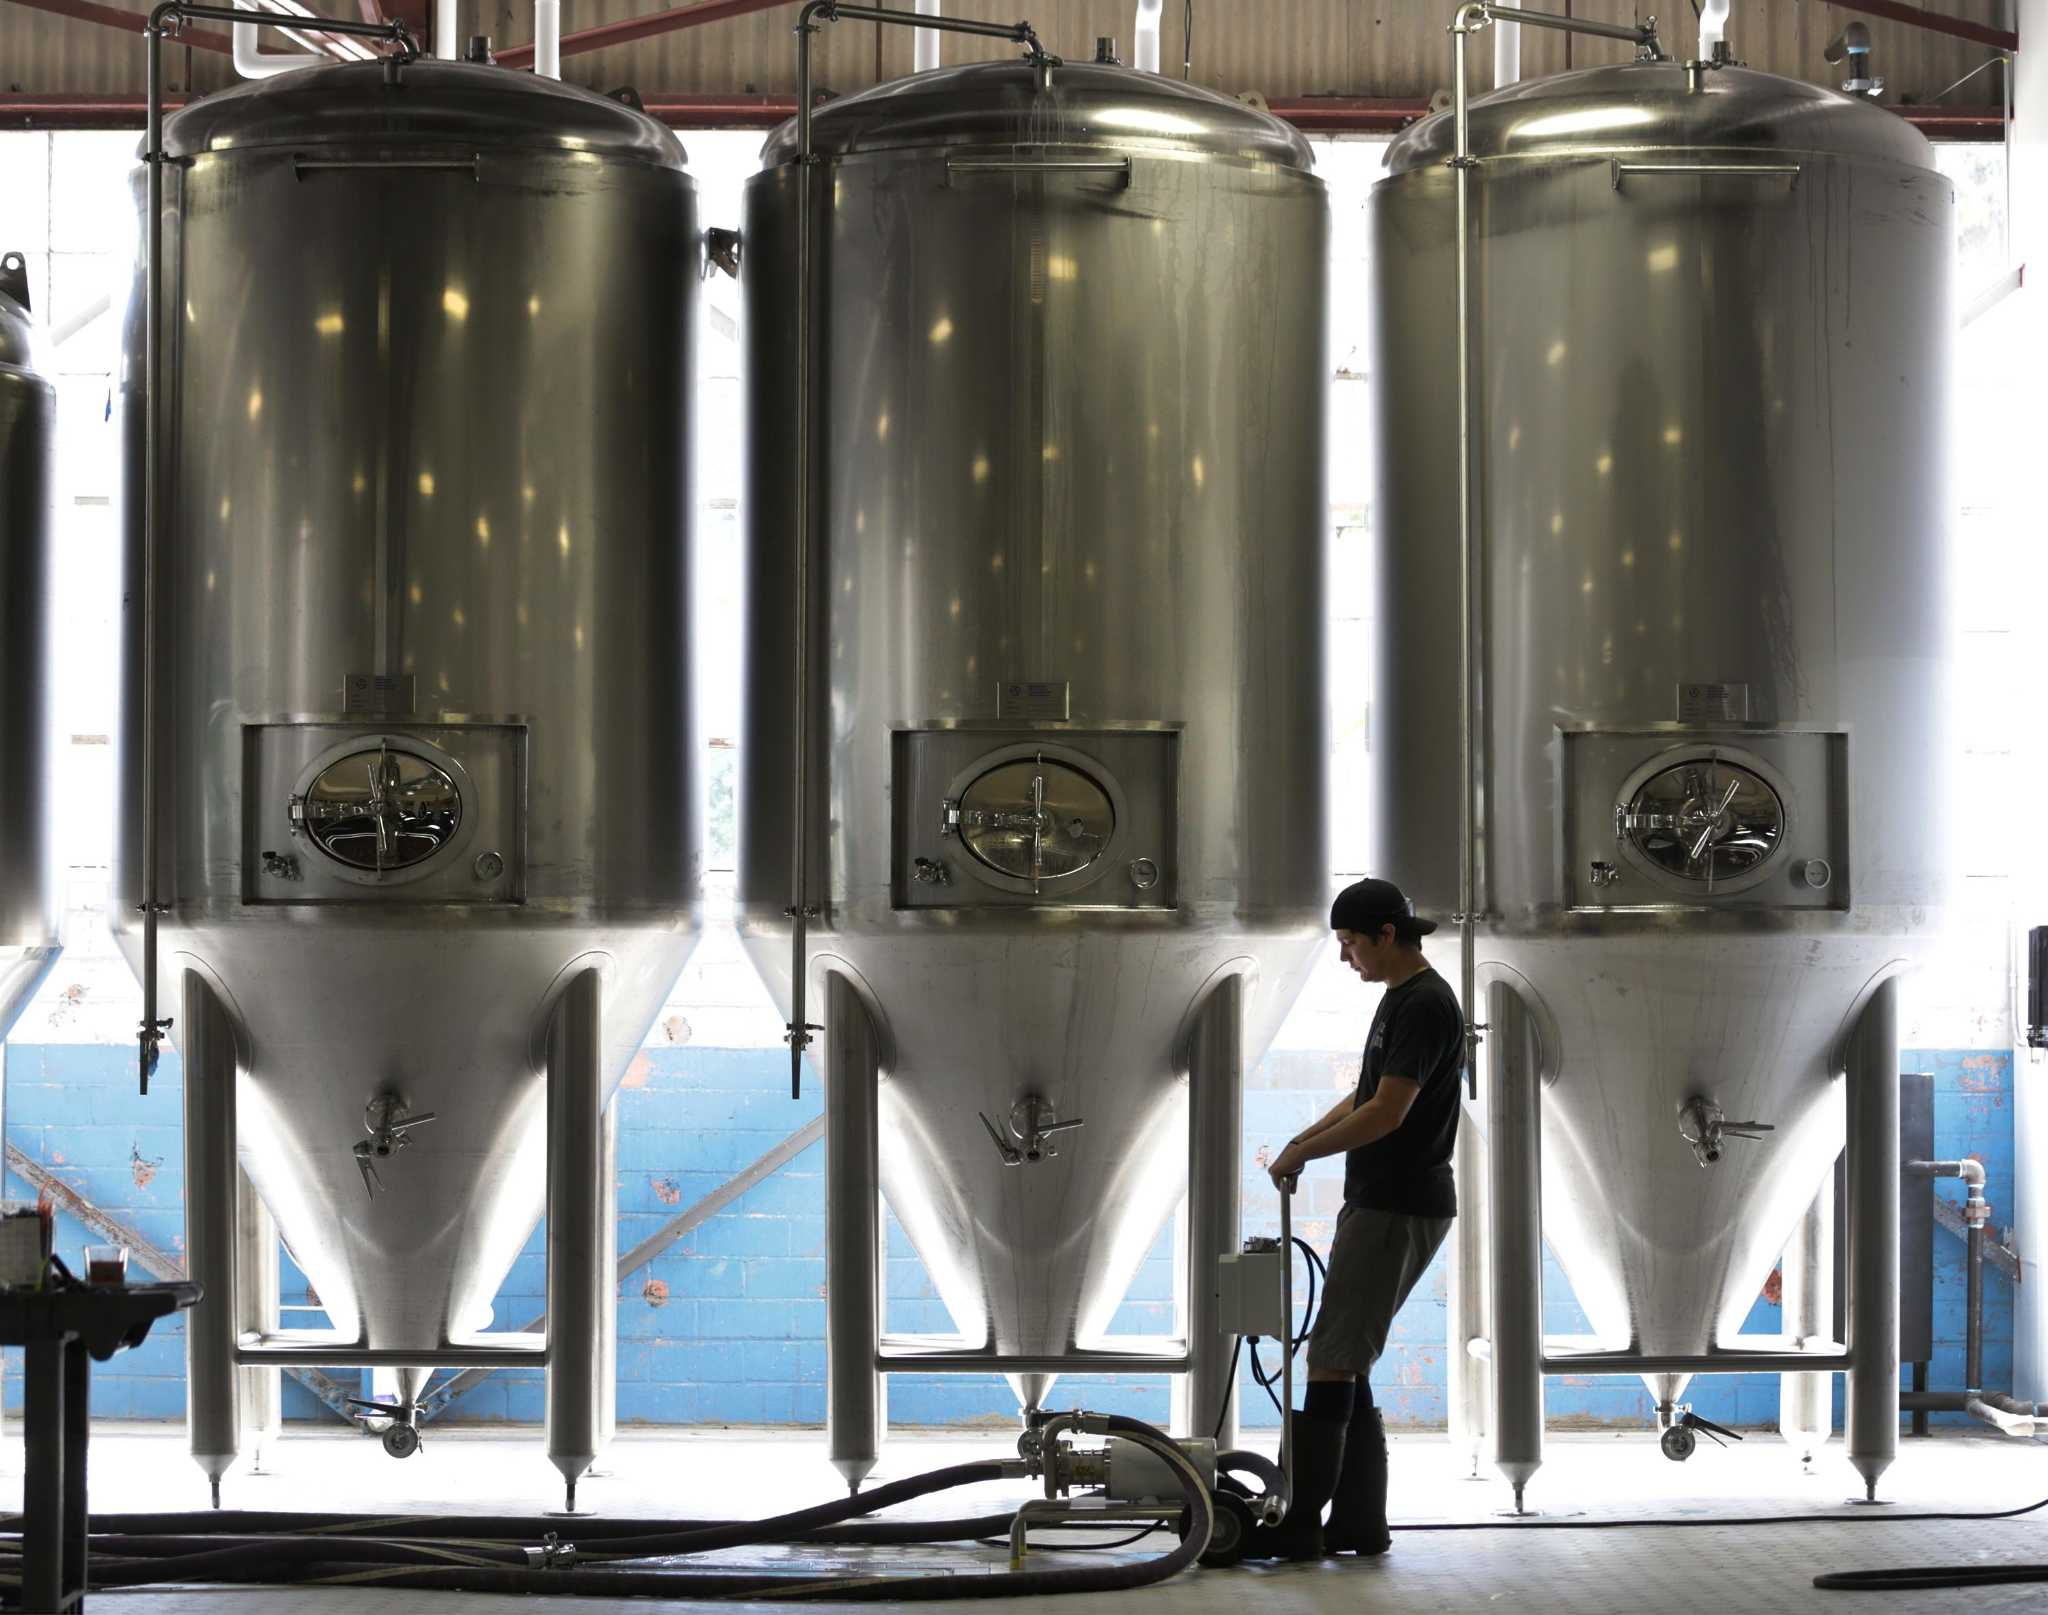 Big Beer trying to swallow craft beer industry